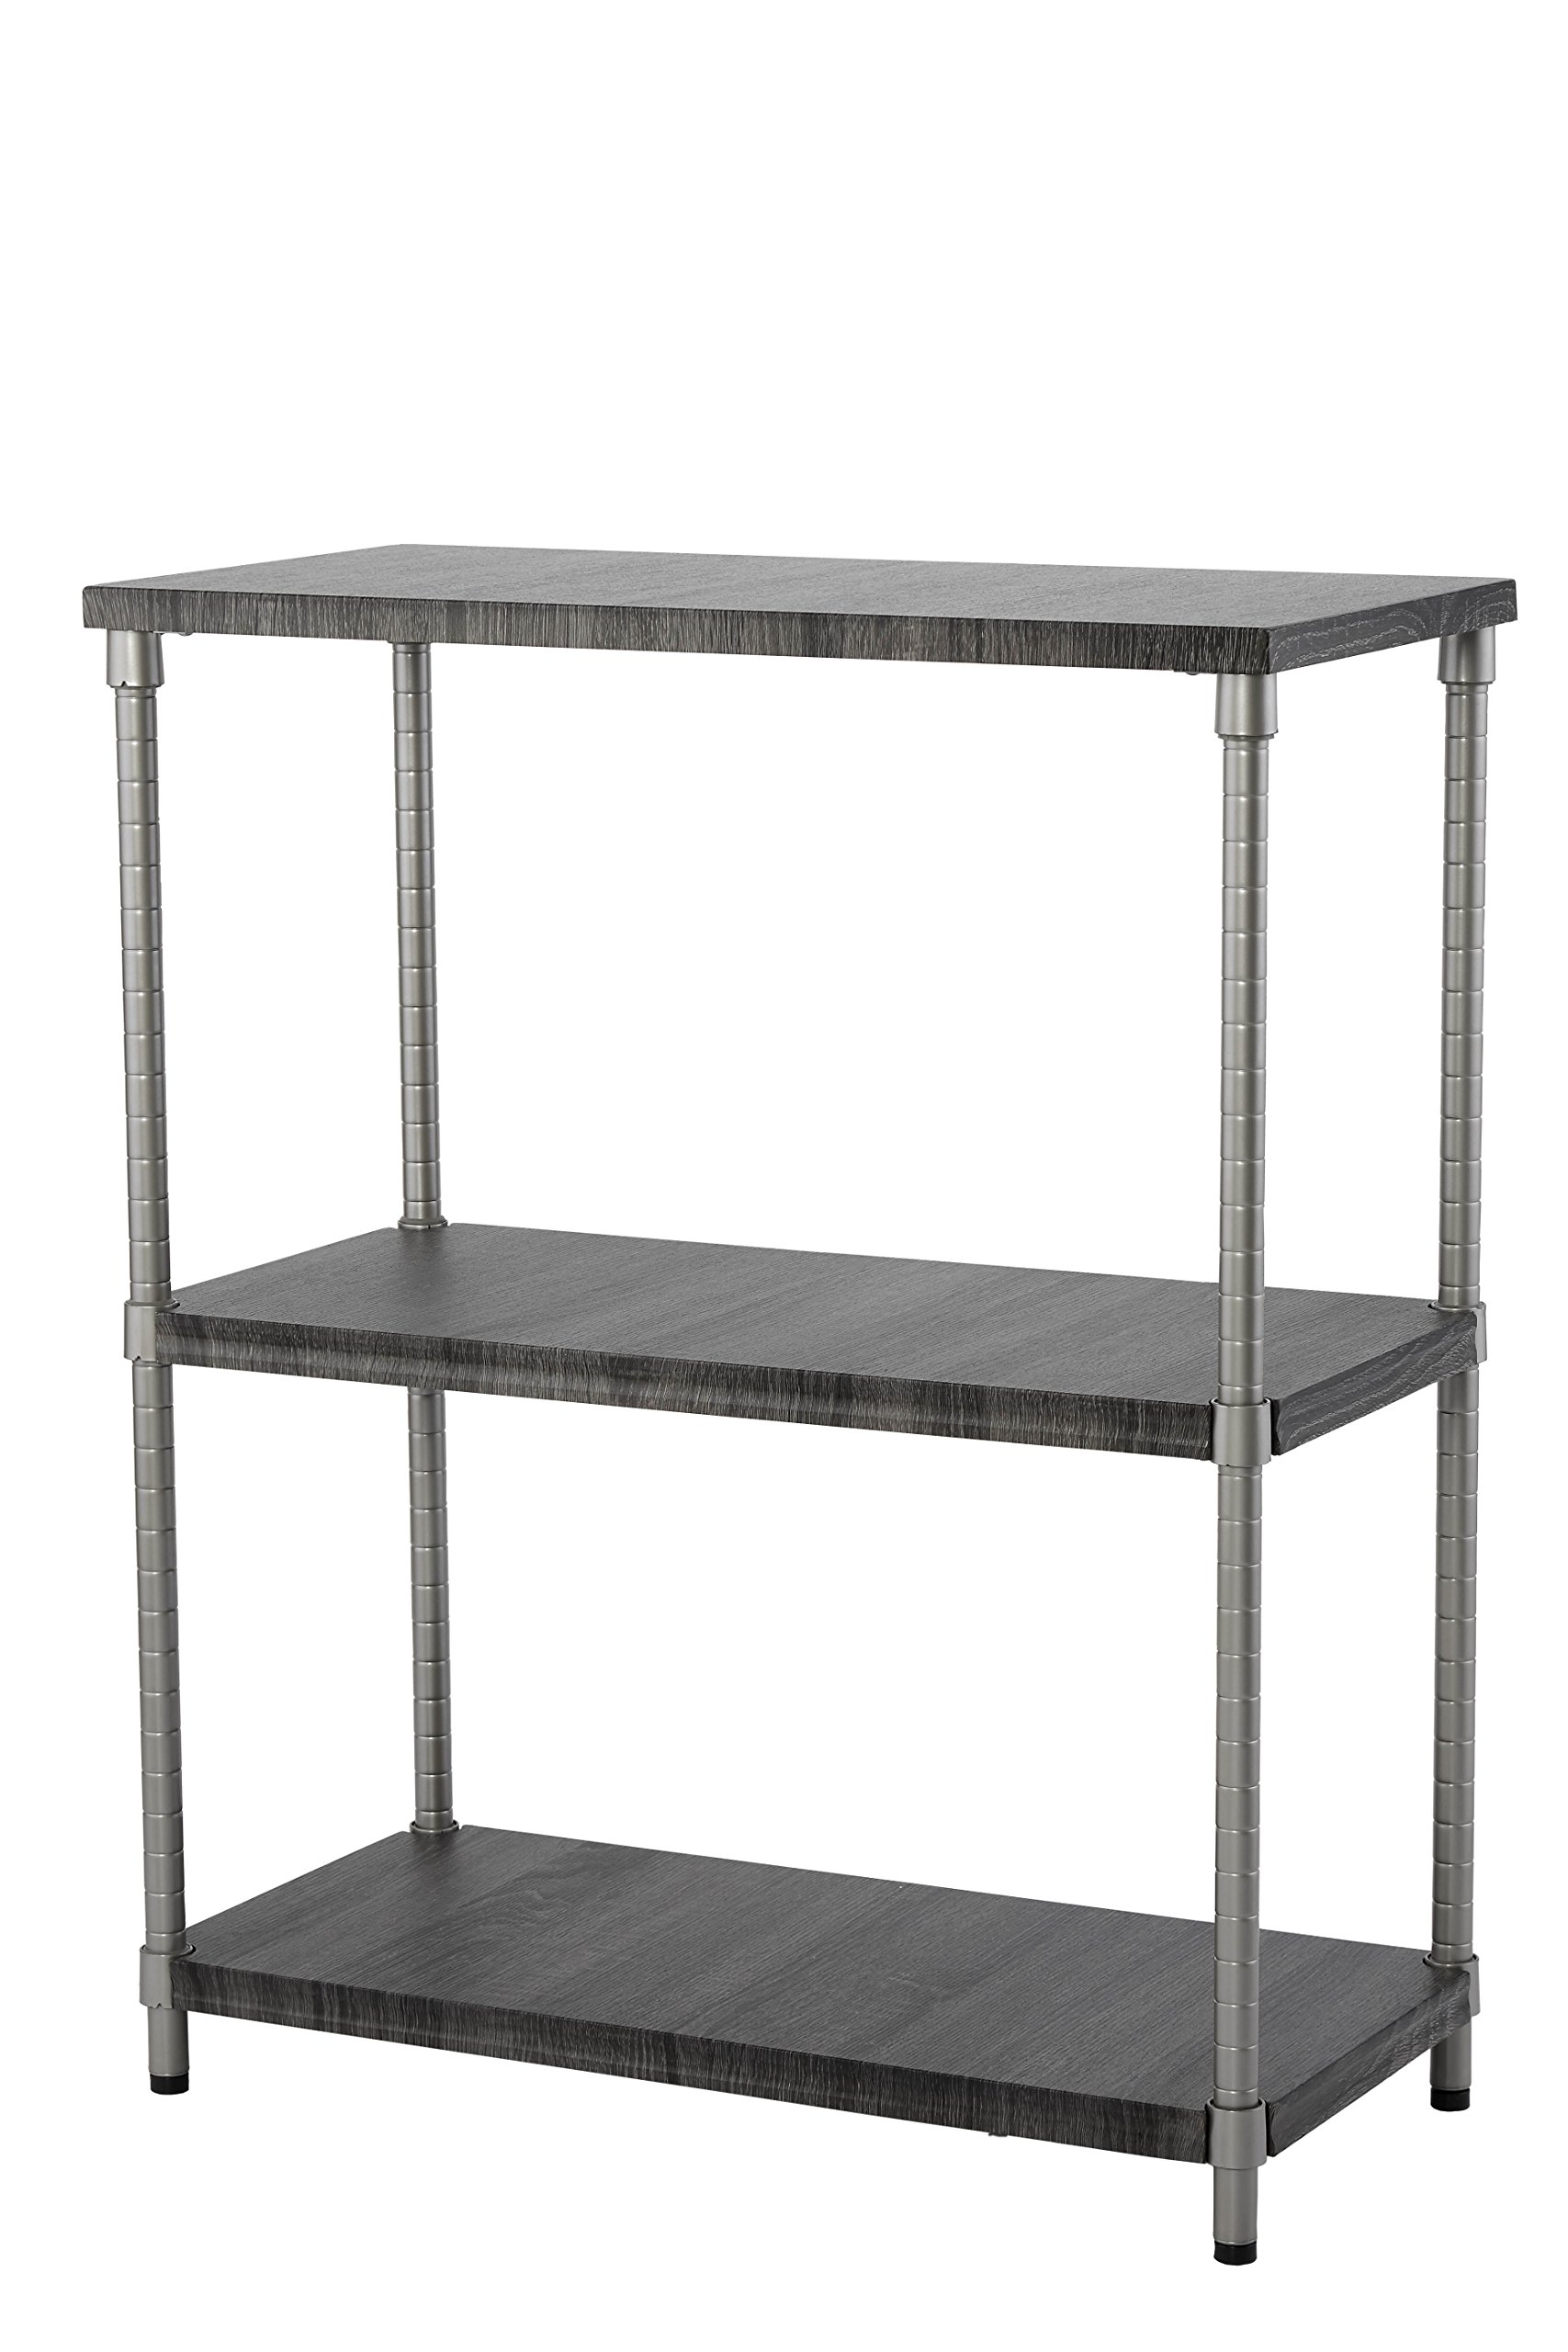 Home Zone Bookcase Storage Rack with 3-Tier Wide Shelving Unit | | Steel and Wood with Satin Nickel Finish, by Home Zone